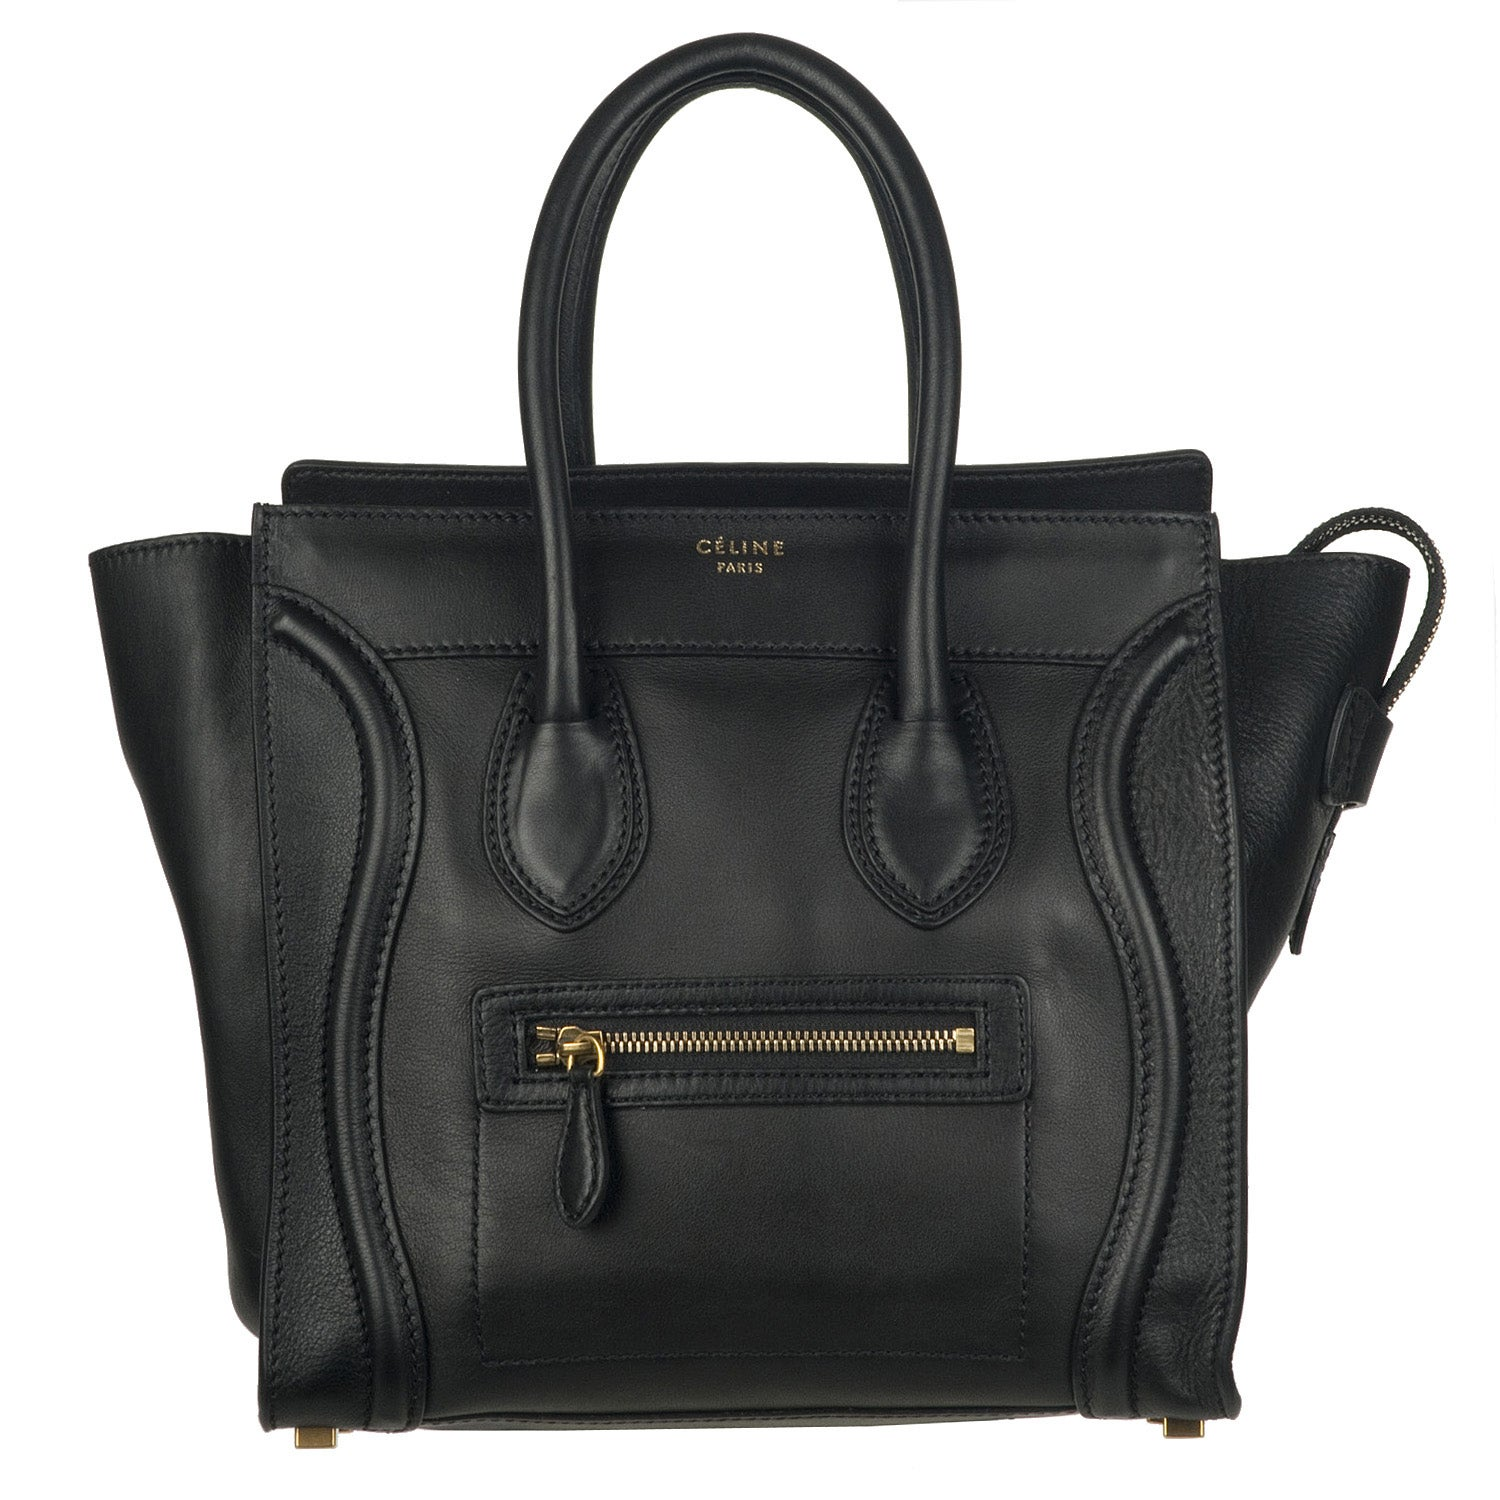 Celine Micro Black Leather Luggage Bag Tote